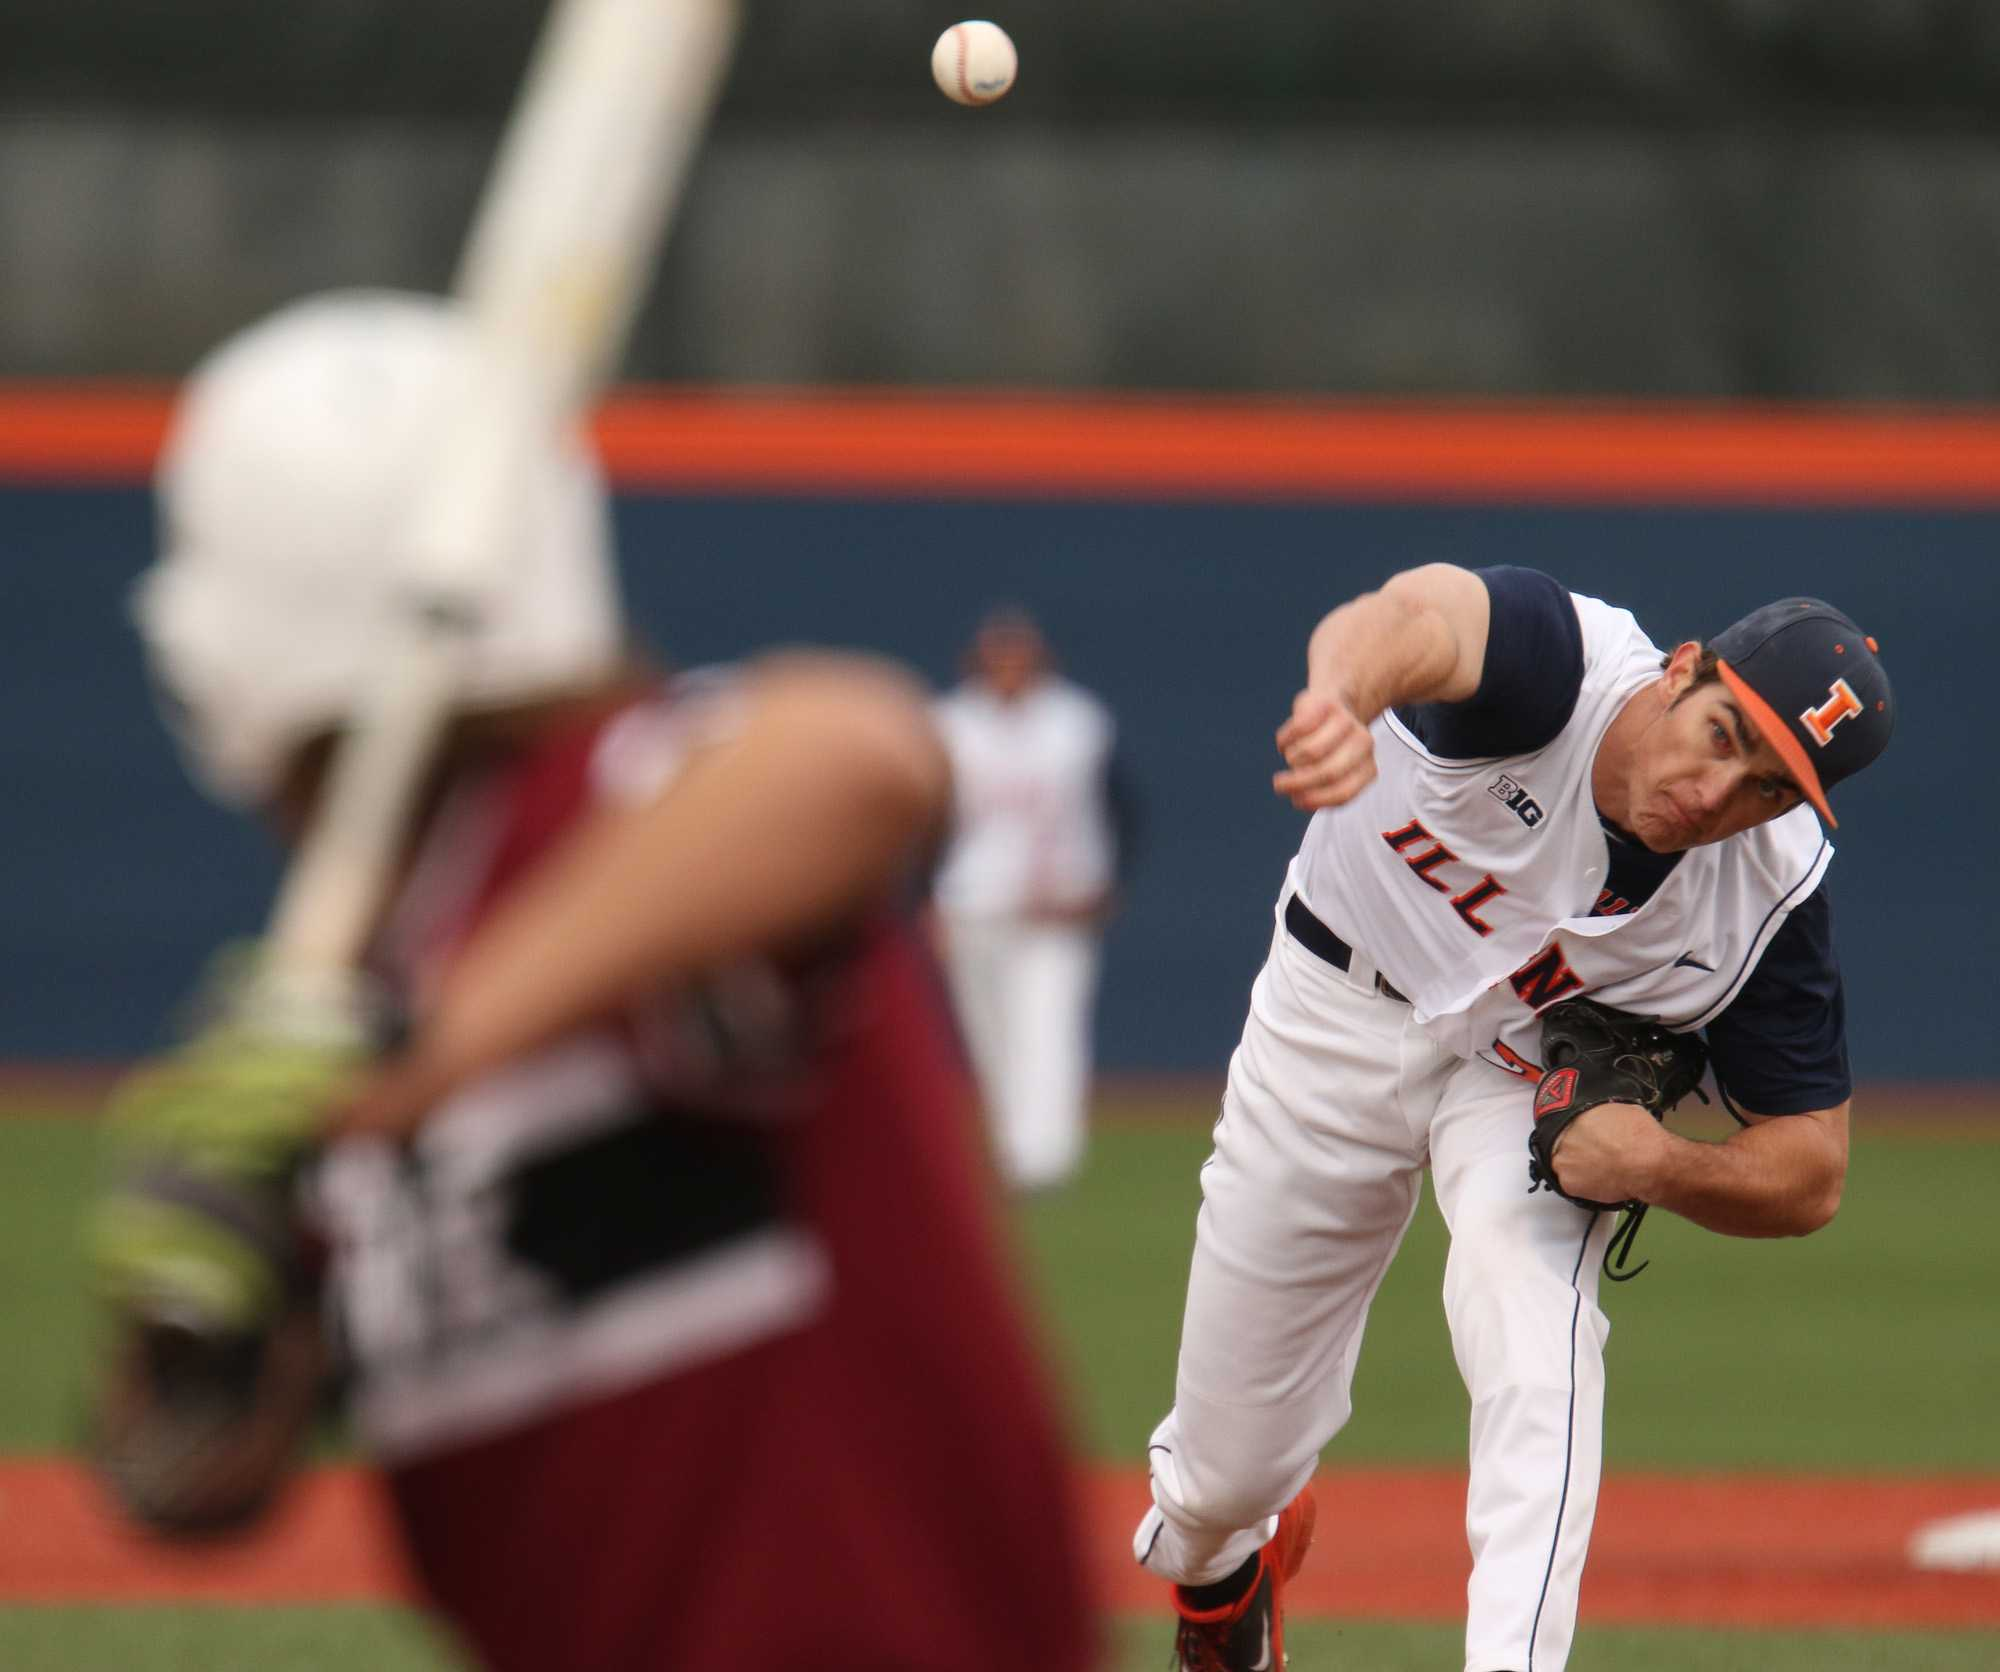 Illinois' Cody Sedlock (29) pitches during the game against Lindenwood University at Illinois Field, on Wednesday, March 18, 2015. The Illini won 7-1.